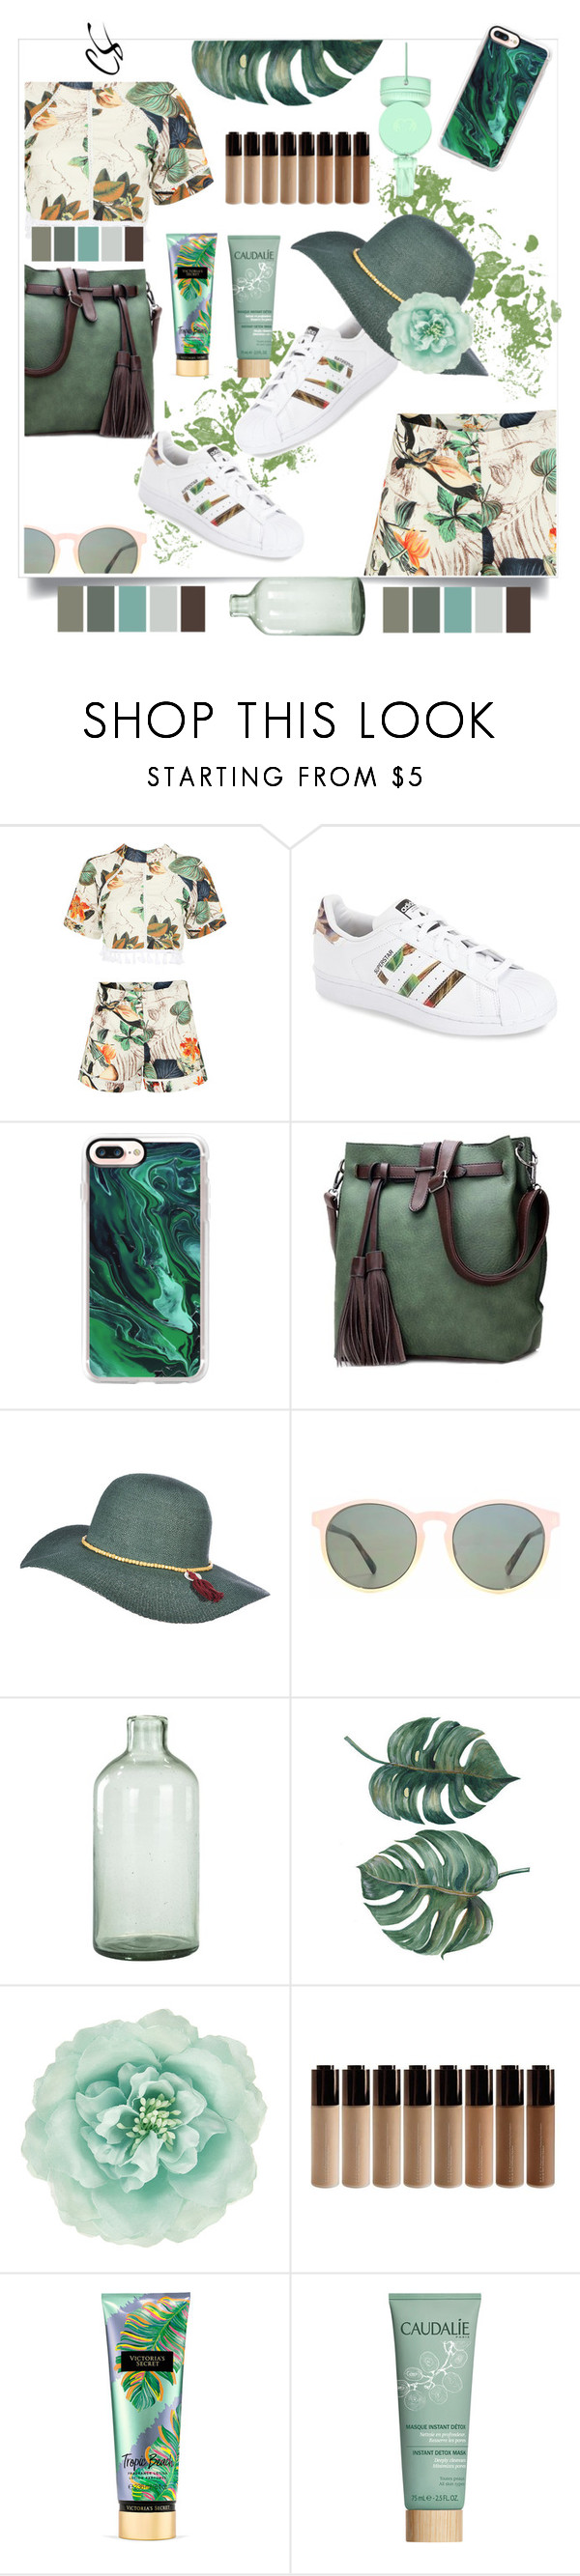 """""""Good life"""" by pretty0329 ❤ liked on Polyvore featuring adidas, Casetify, Scala, HOOK LDN, Fresh 'N Rebel, Imperfect Design, Monsoon, Victoria's Secret and Caudalíe"""